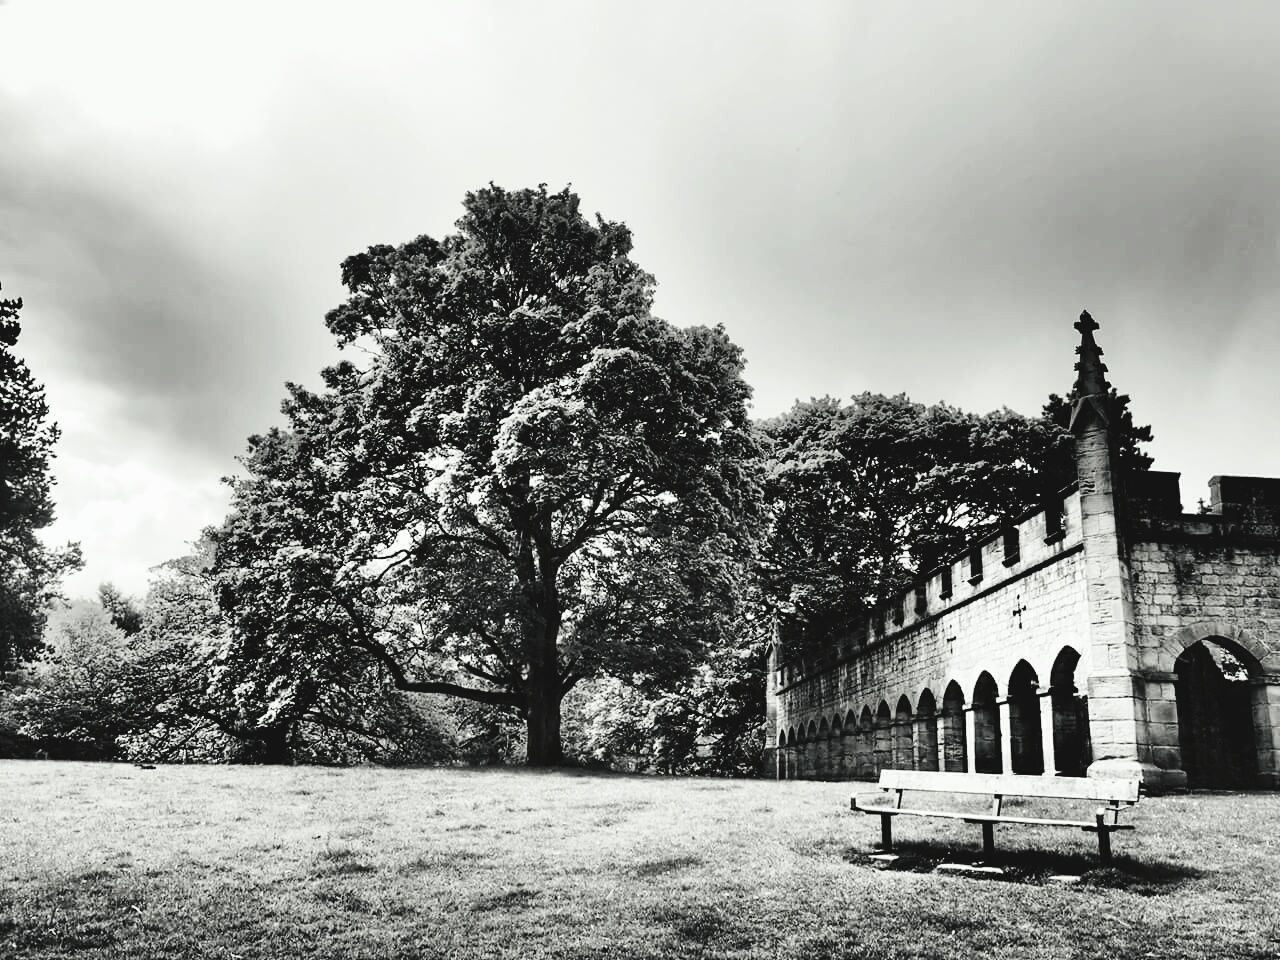 The Deer house Auckland castle Bishop Of Durham County Durham Trees TreePorn Auckland Castle B&w Photography North East The Deer House The Great Outdoors - 2015 EyeEm Awards